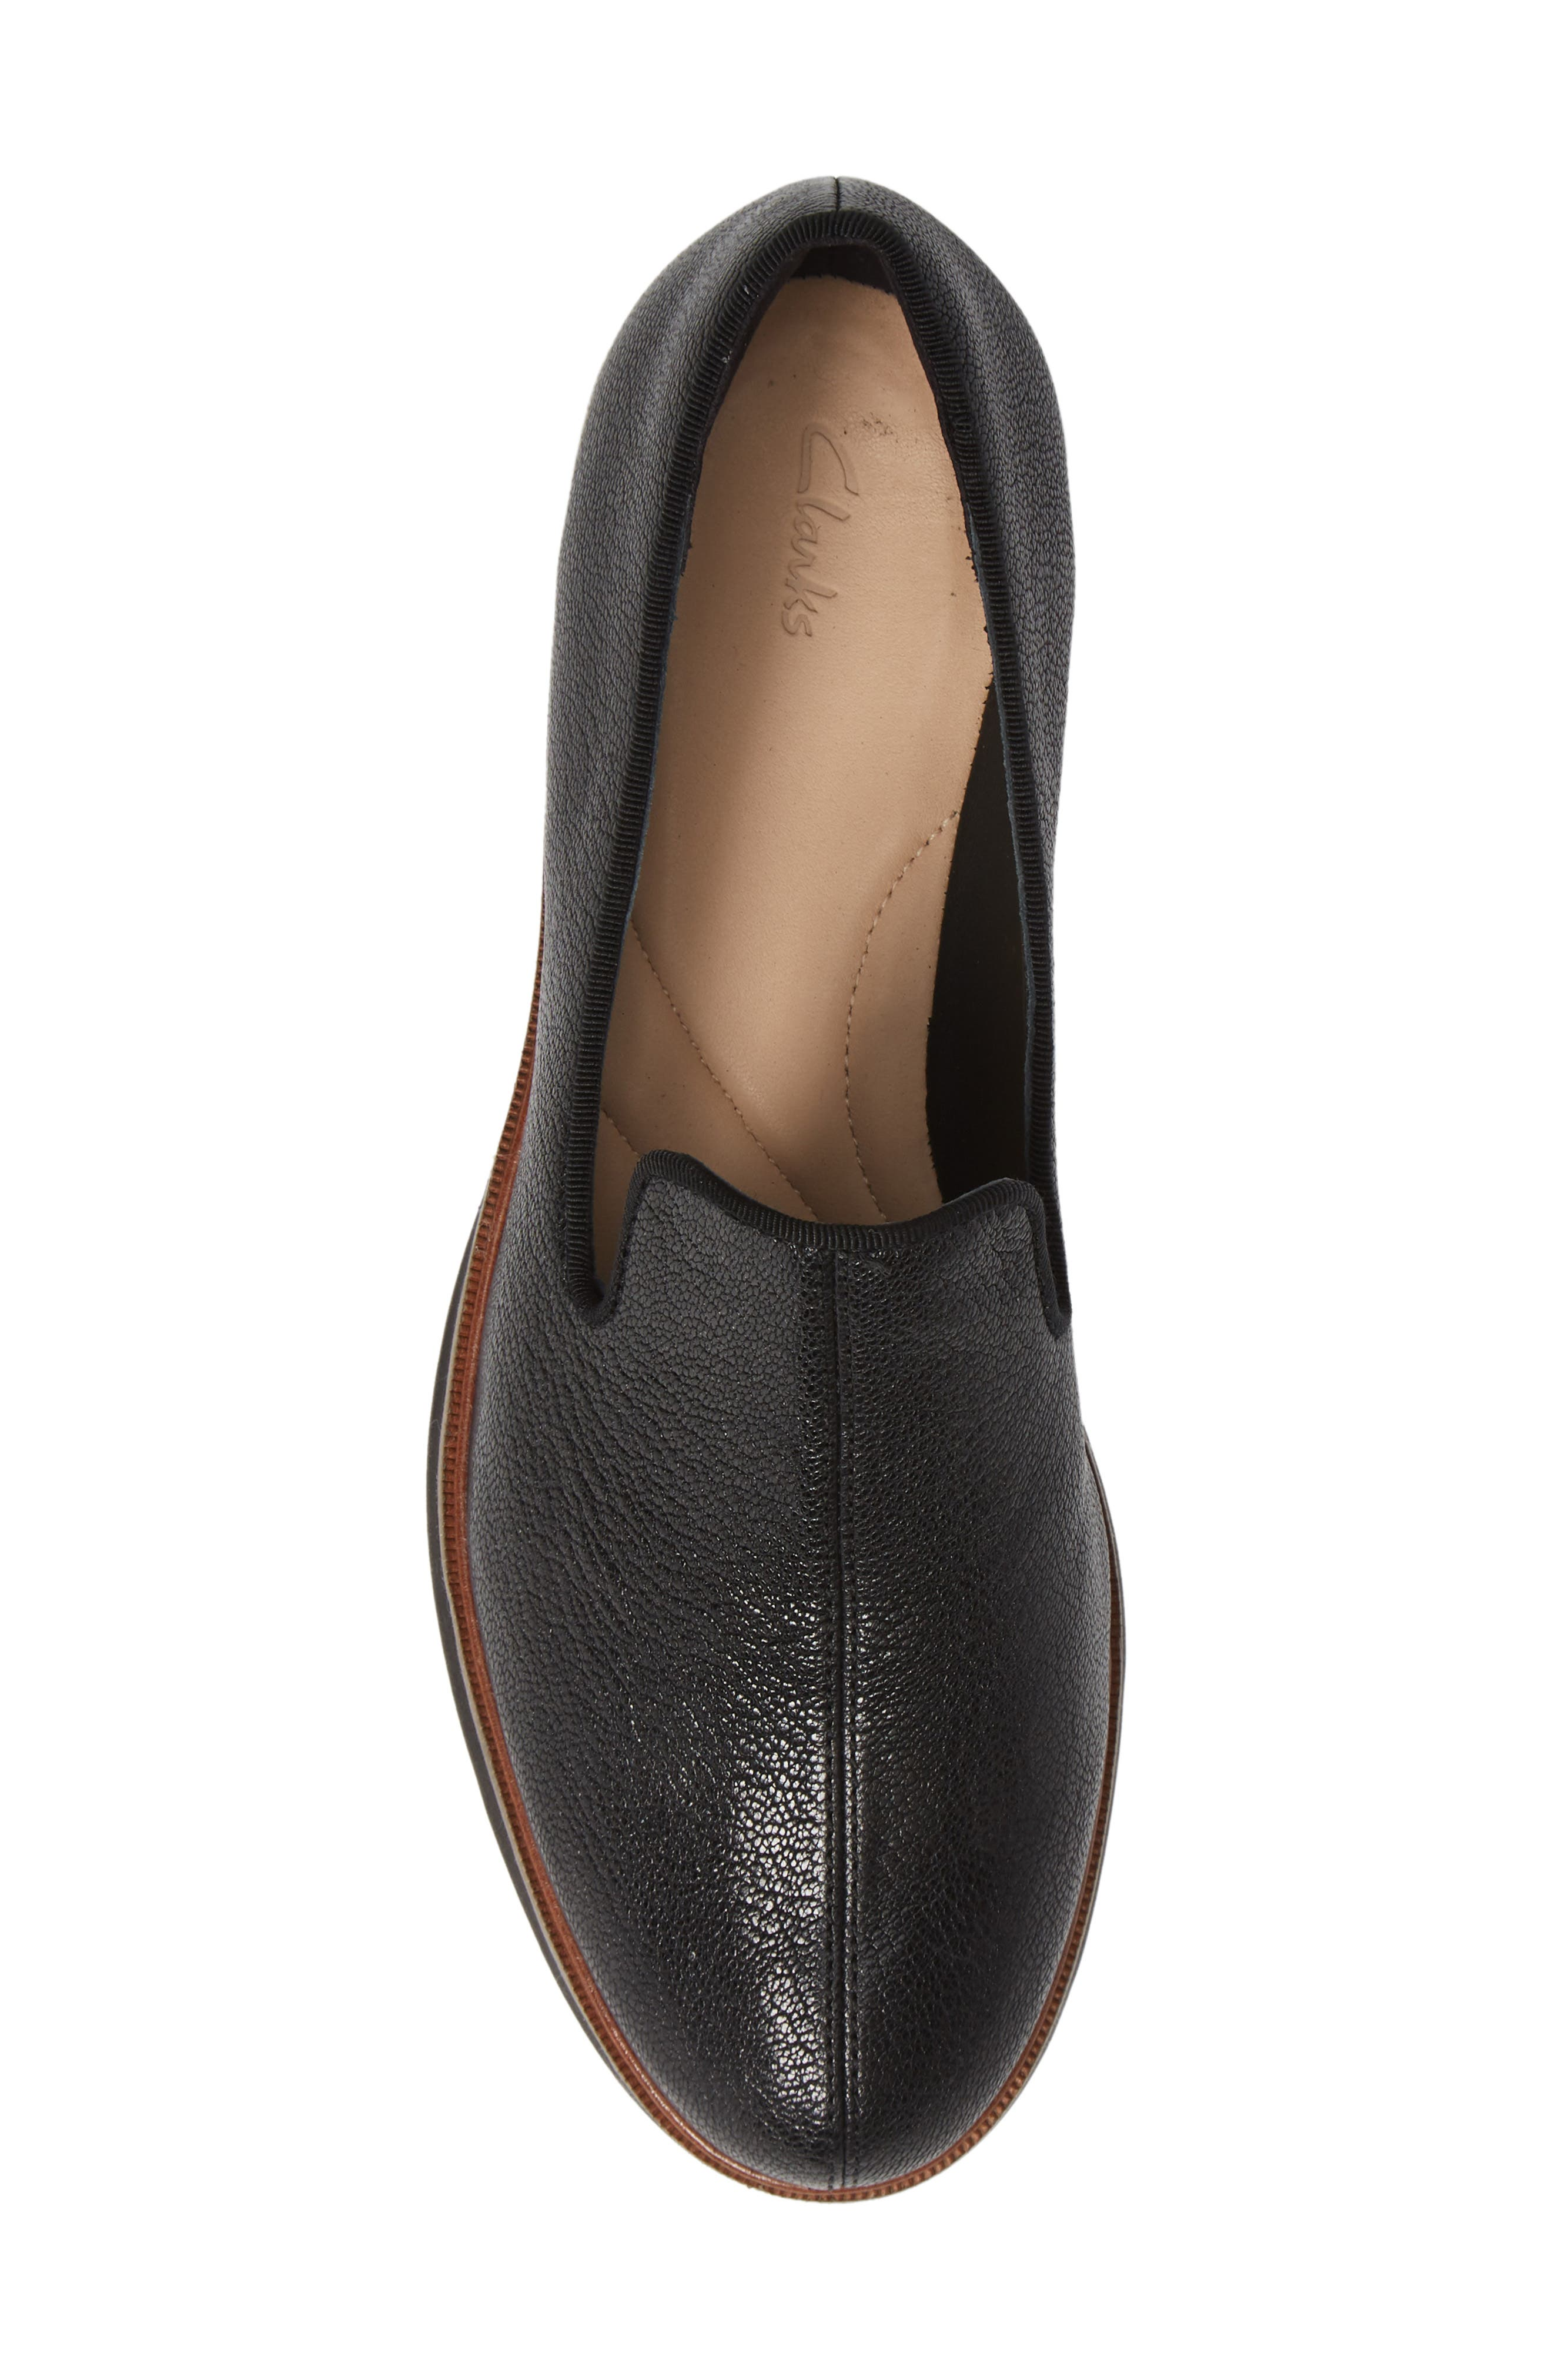 CLARKS<SUP>®</SUP>, Frida Loafer, Alternate thumbnail 5, color, BLACK TUMBLED LEATHER